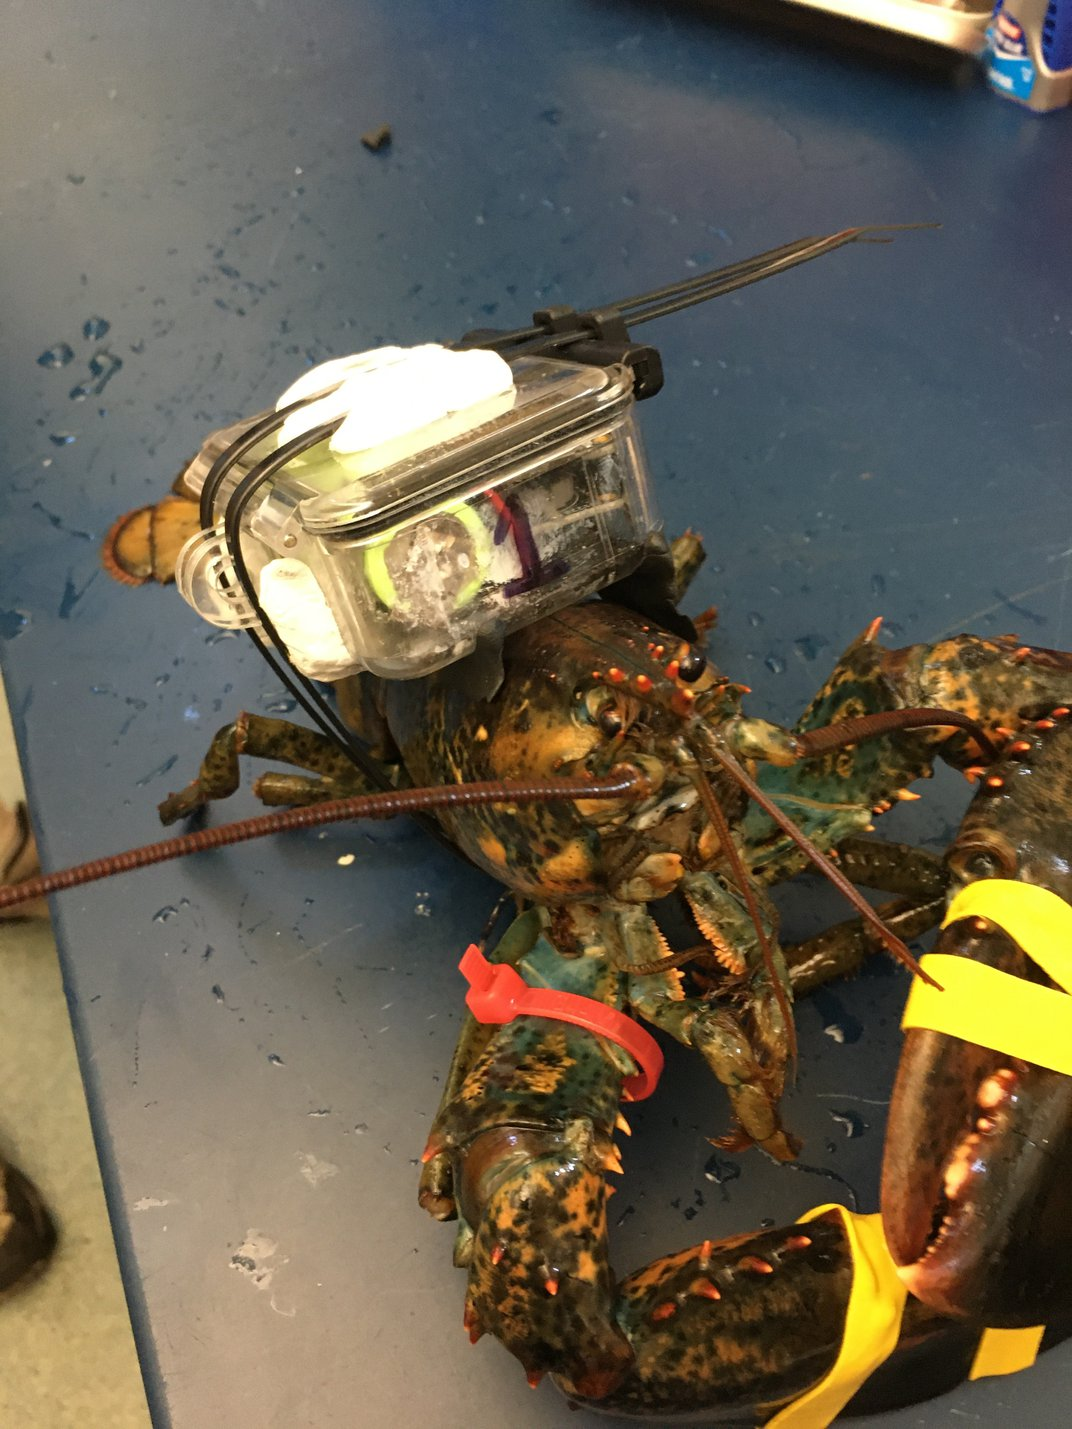 A New Device Tracks Lobsters as They Move Through the Supply Chain